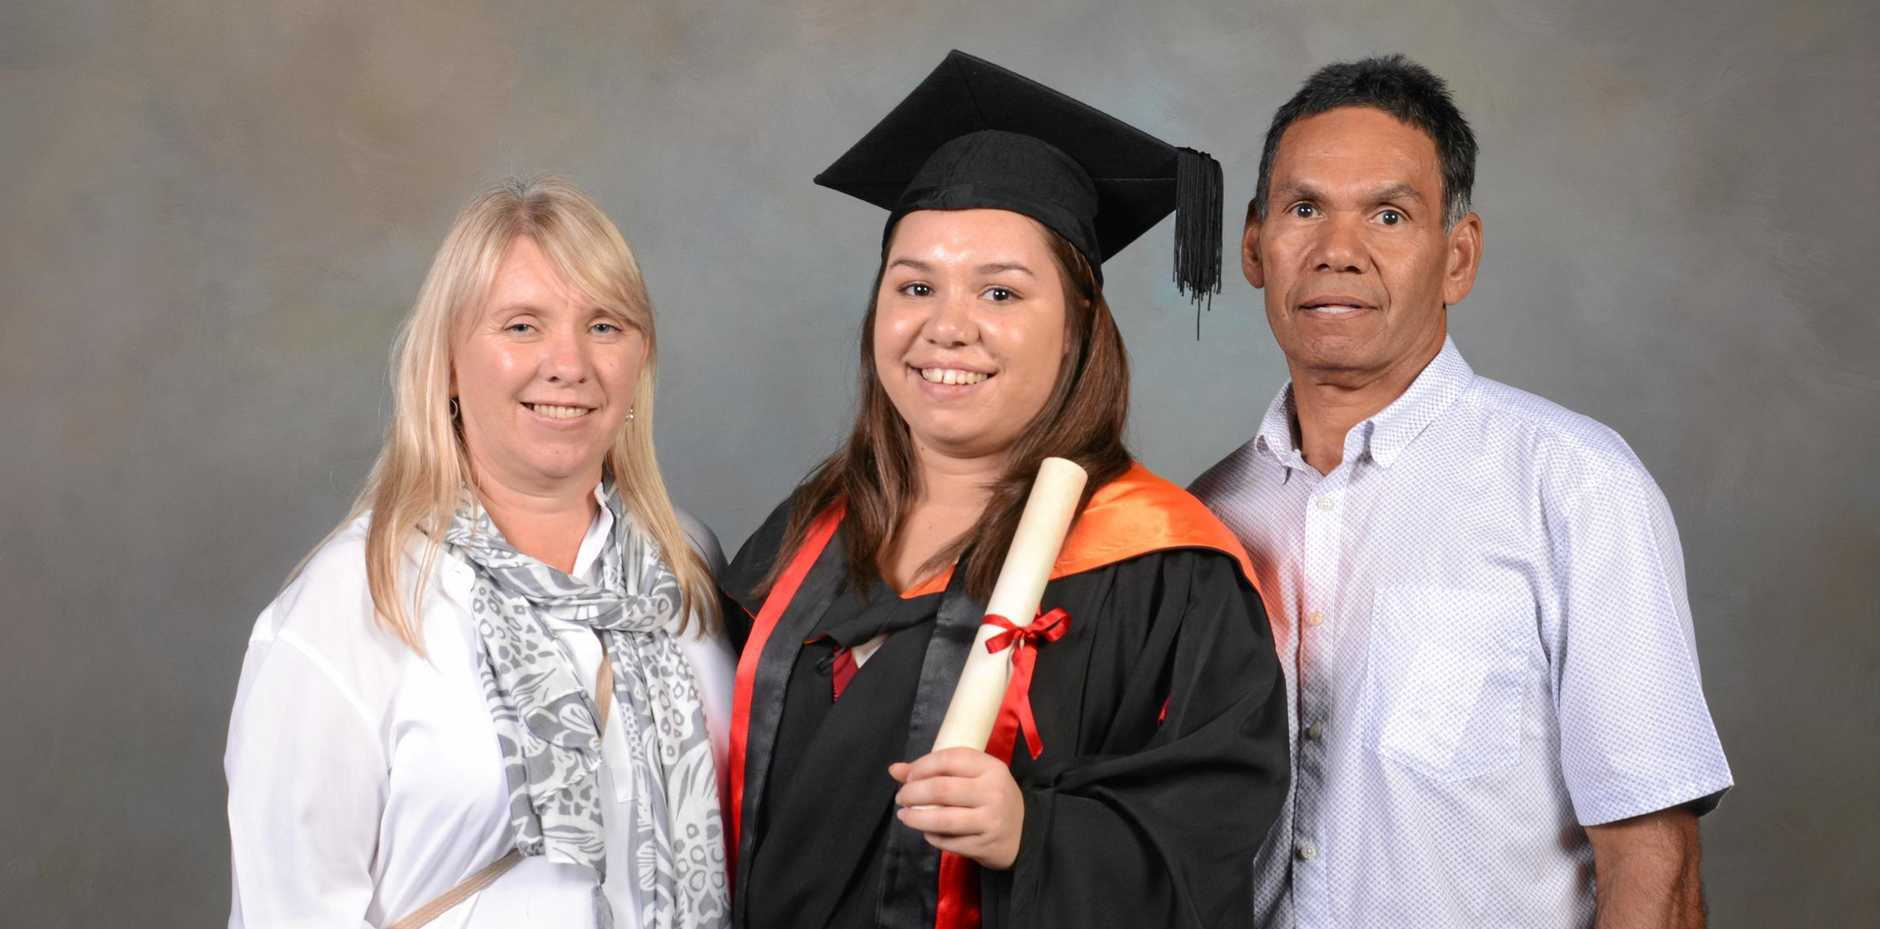 STUDY HARD: Far North Queensland nurse Samantha Watson with her parents Bronwyn and Kevin Watson at her ACU graduation ceremony.